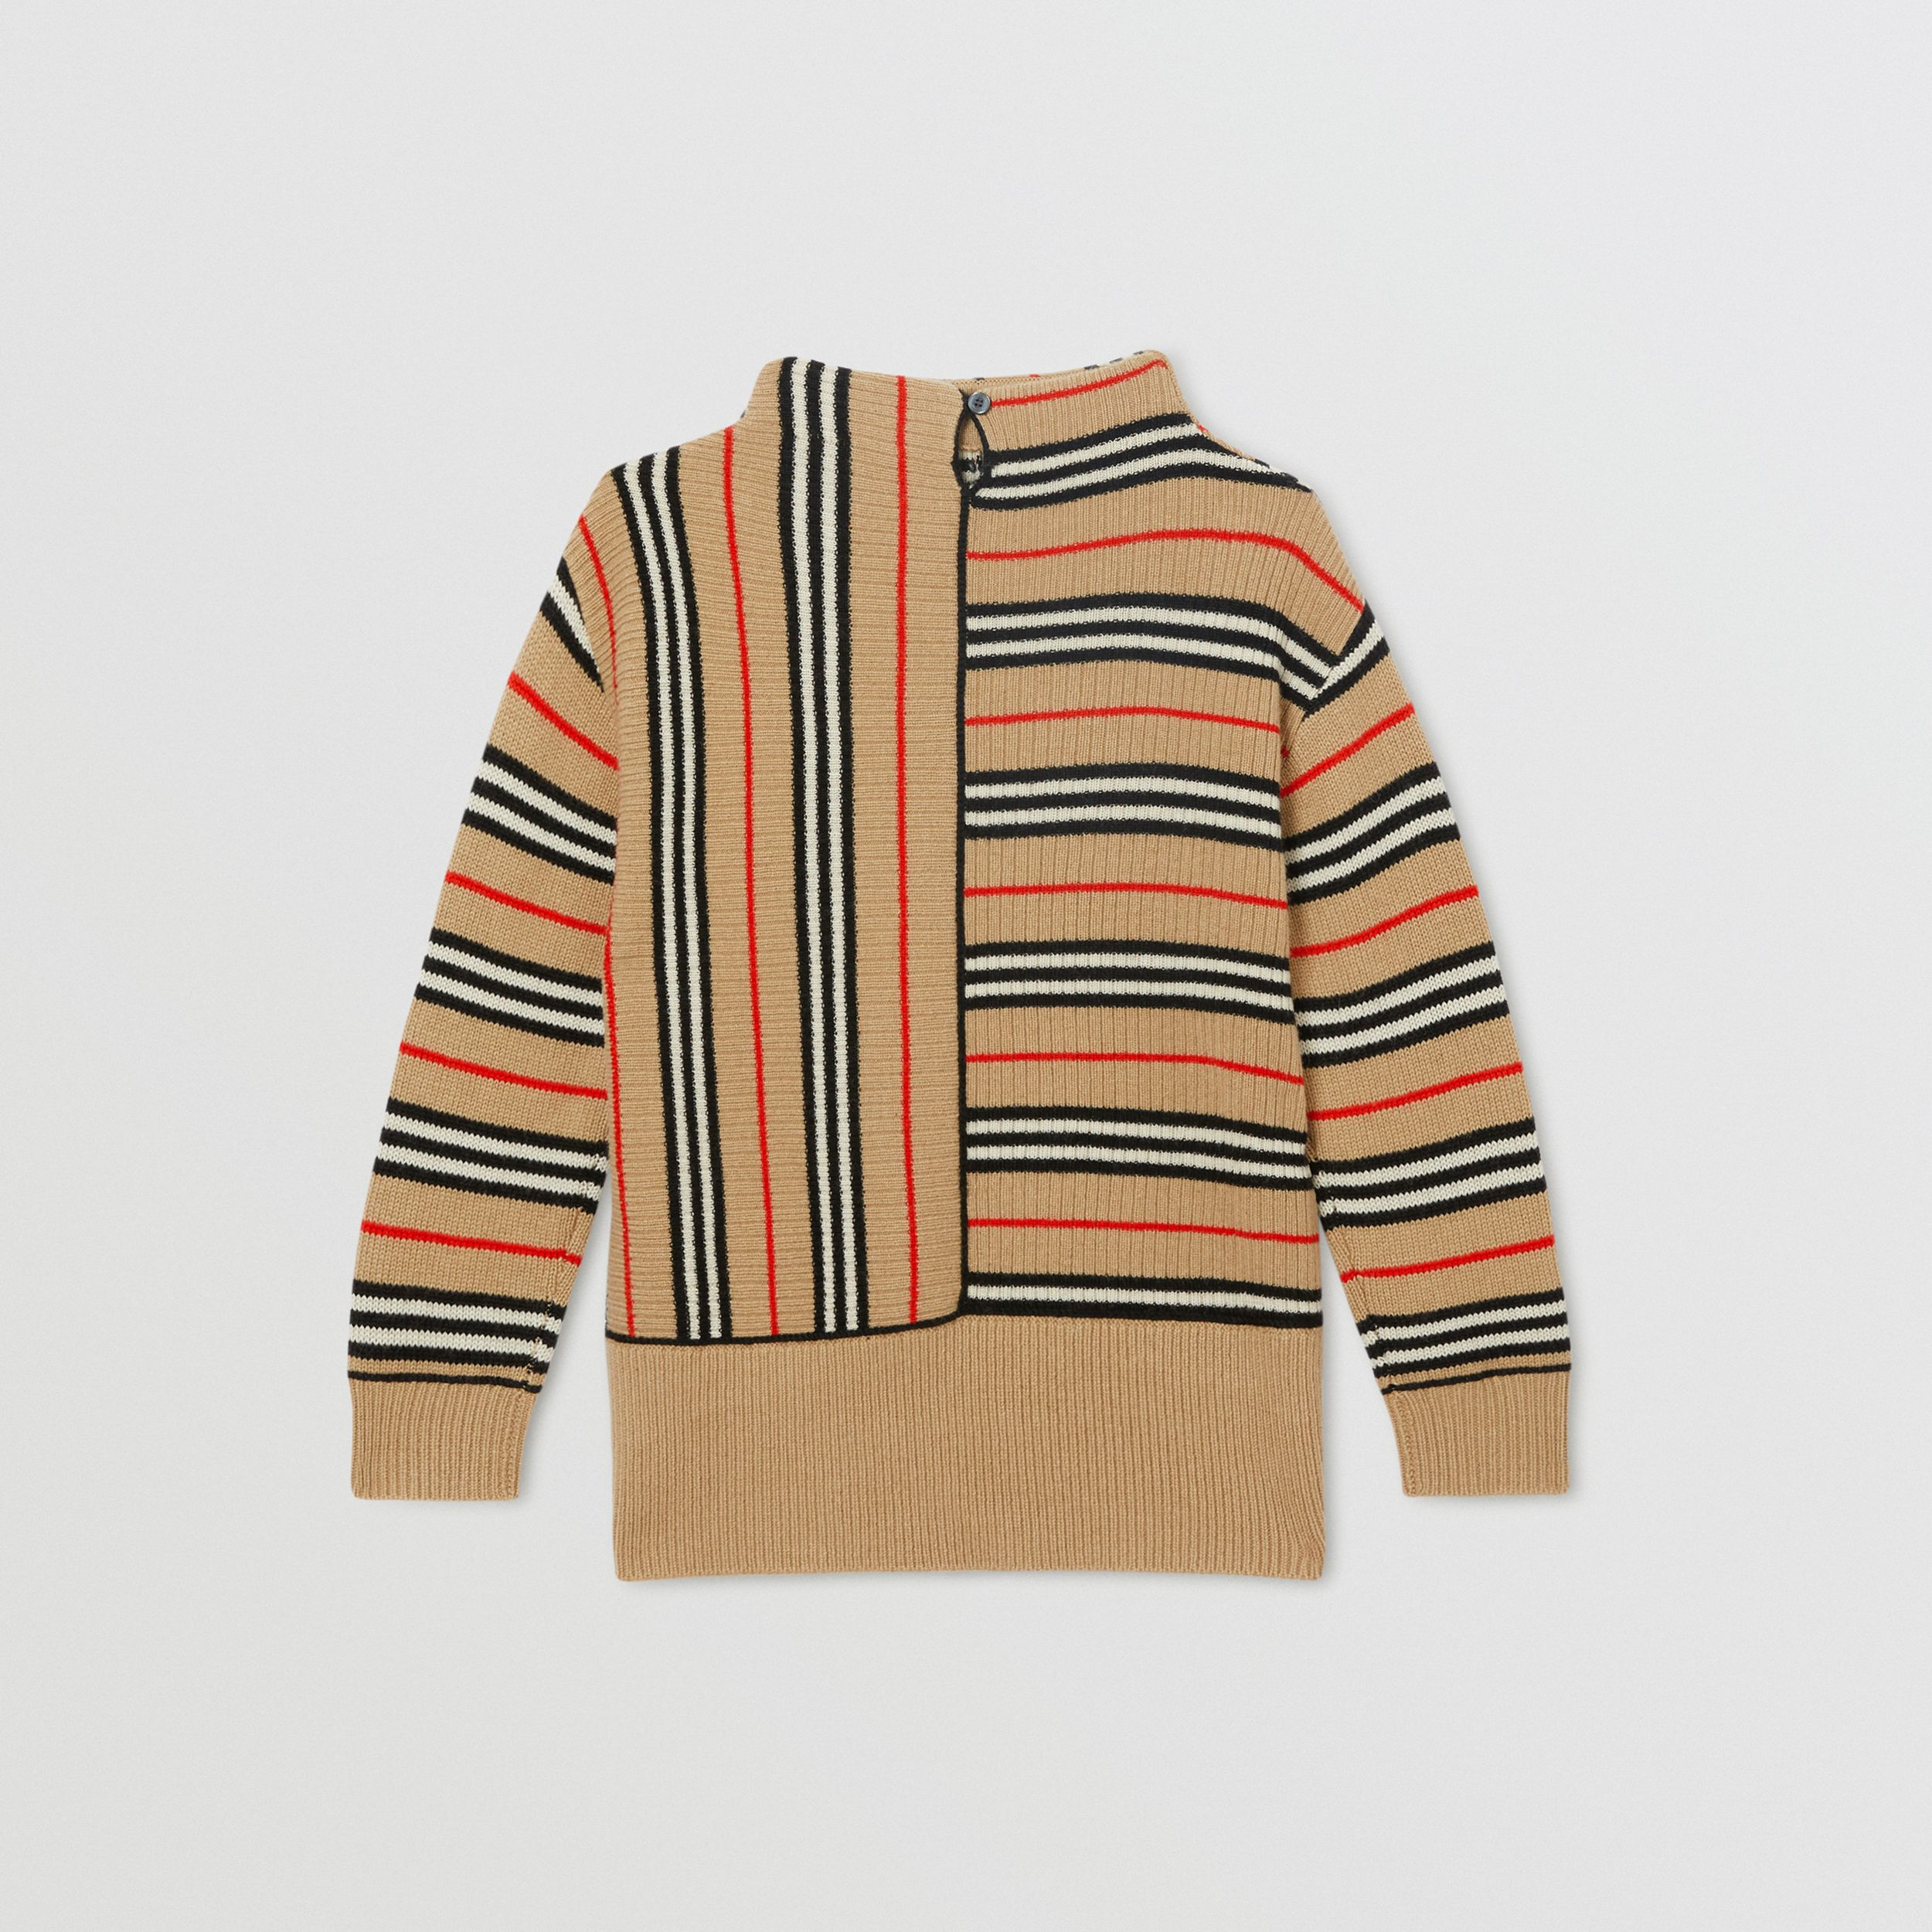 Contrast Icon Stripe Cashmere Wool Sweater in Archive Beige | Burberry - 4